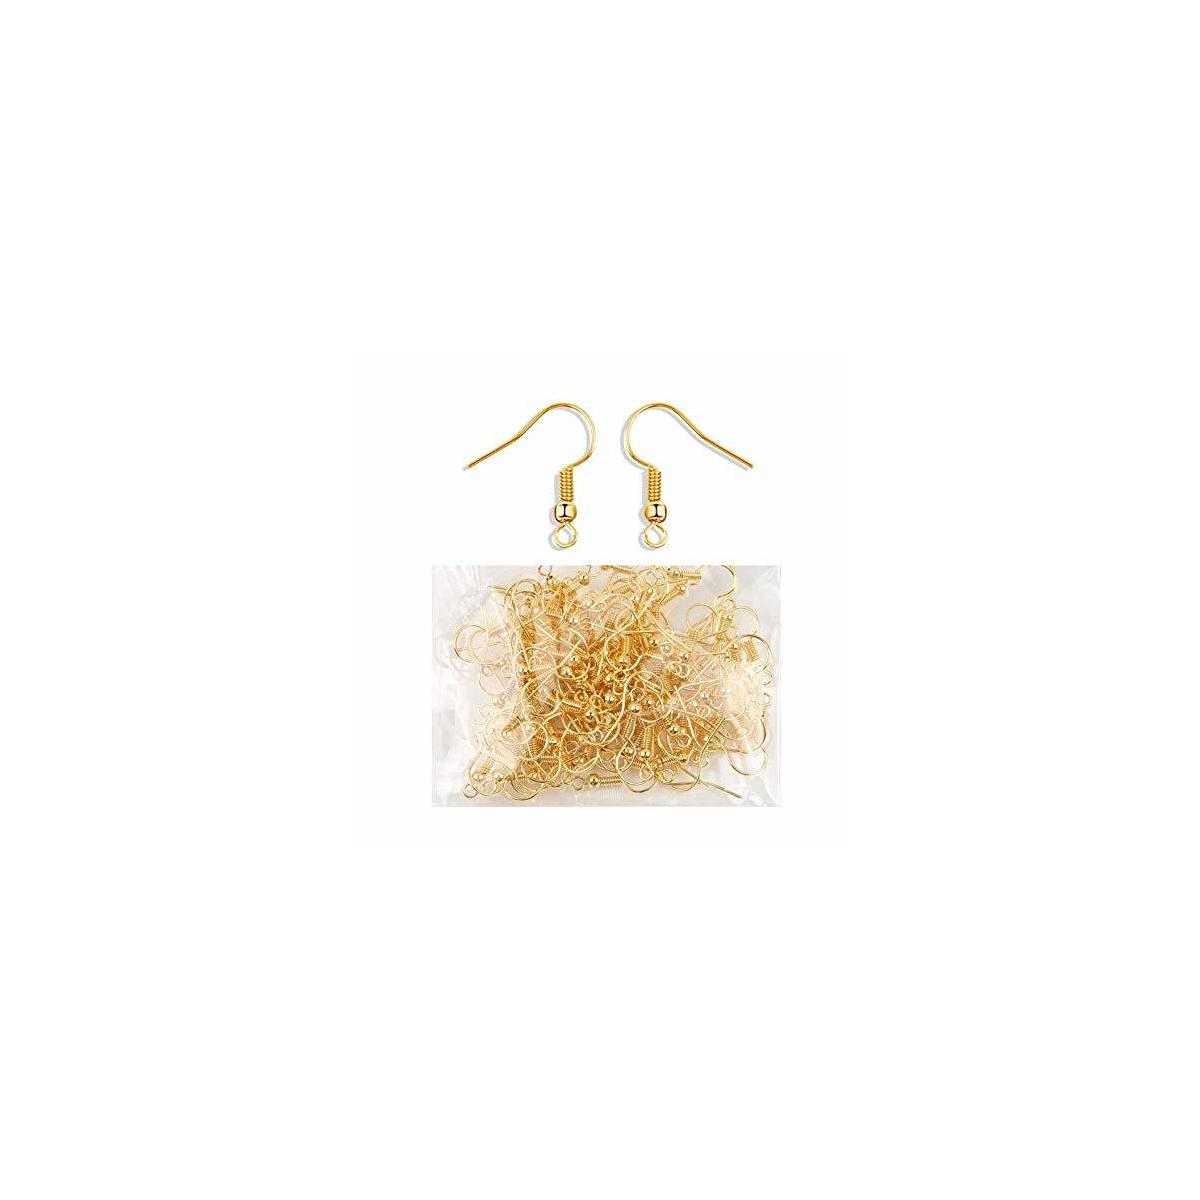 100 Pairs Gold Earring Hooks, Jewelry Findings Making for DIY,Earring Hooks Fish Hook Earrings French Wire Hooks Jewelry Findings Earring Parts DIY Making